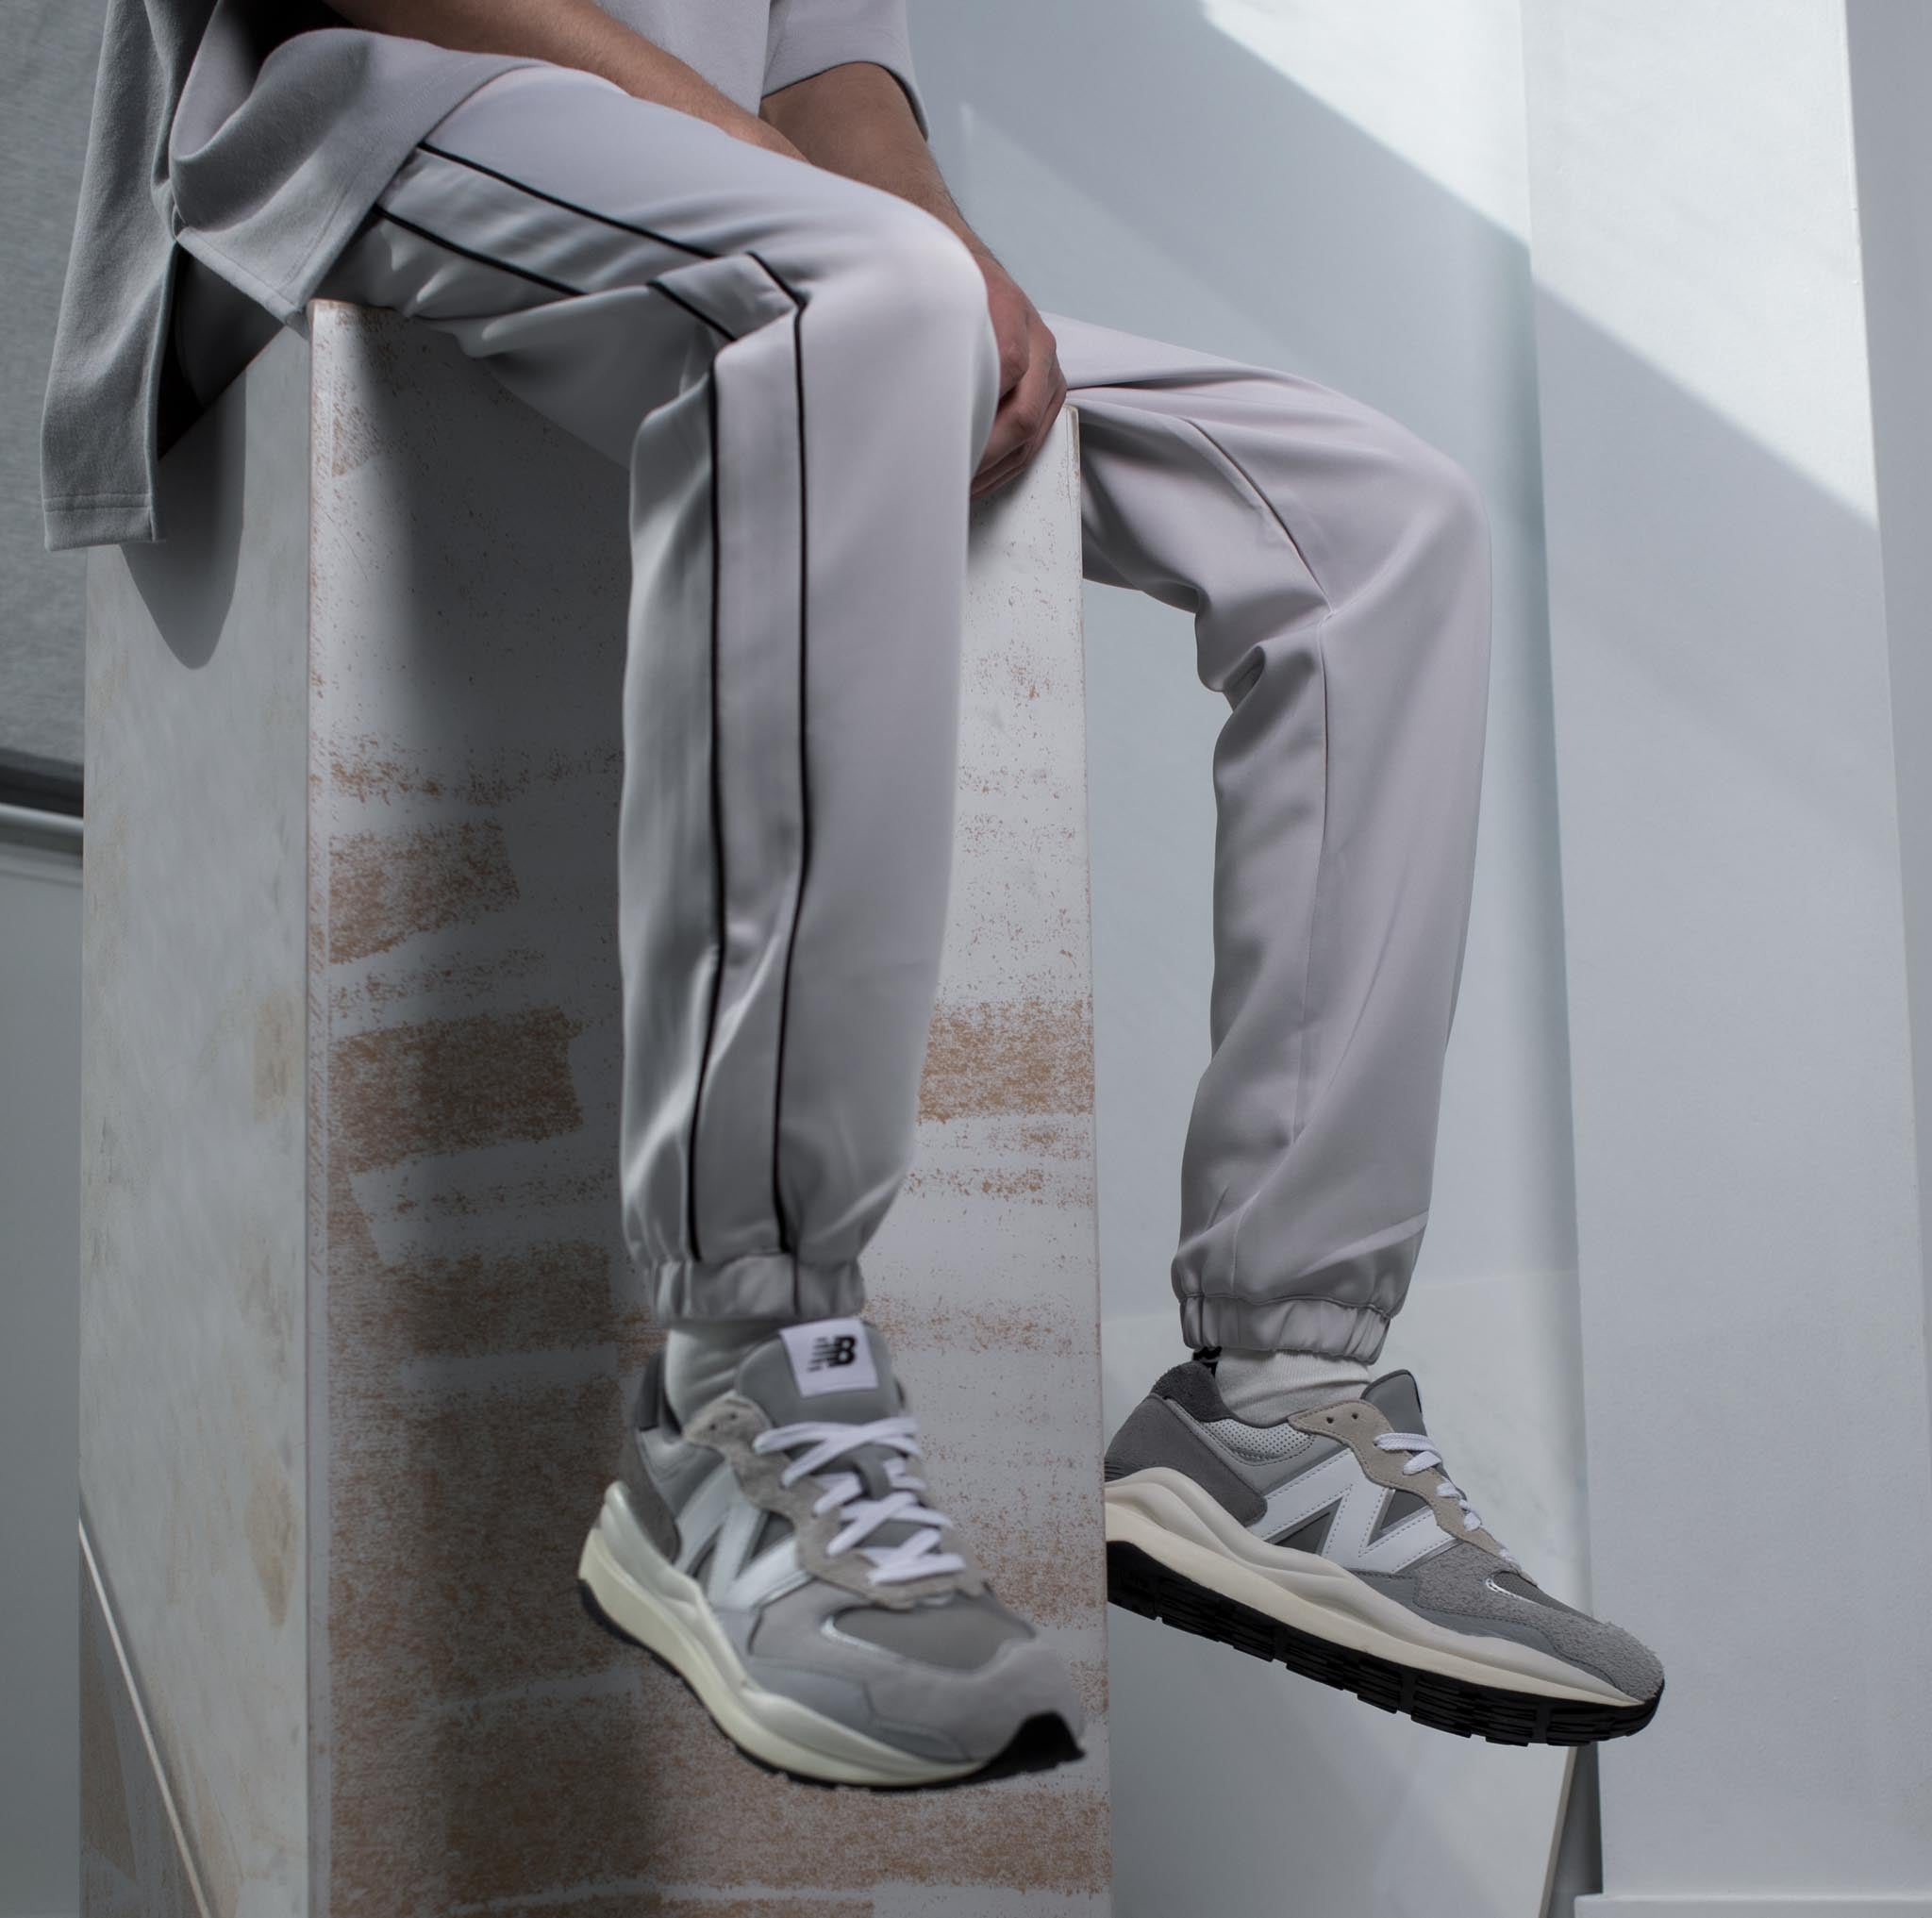 HOMME+ 'ESSENTIAL' Double Piped Trackpants - 2